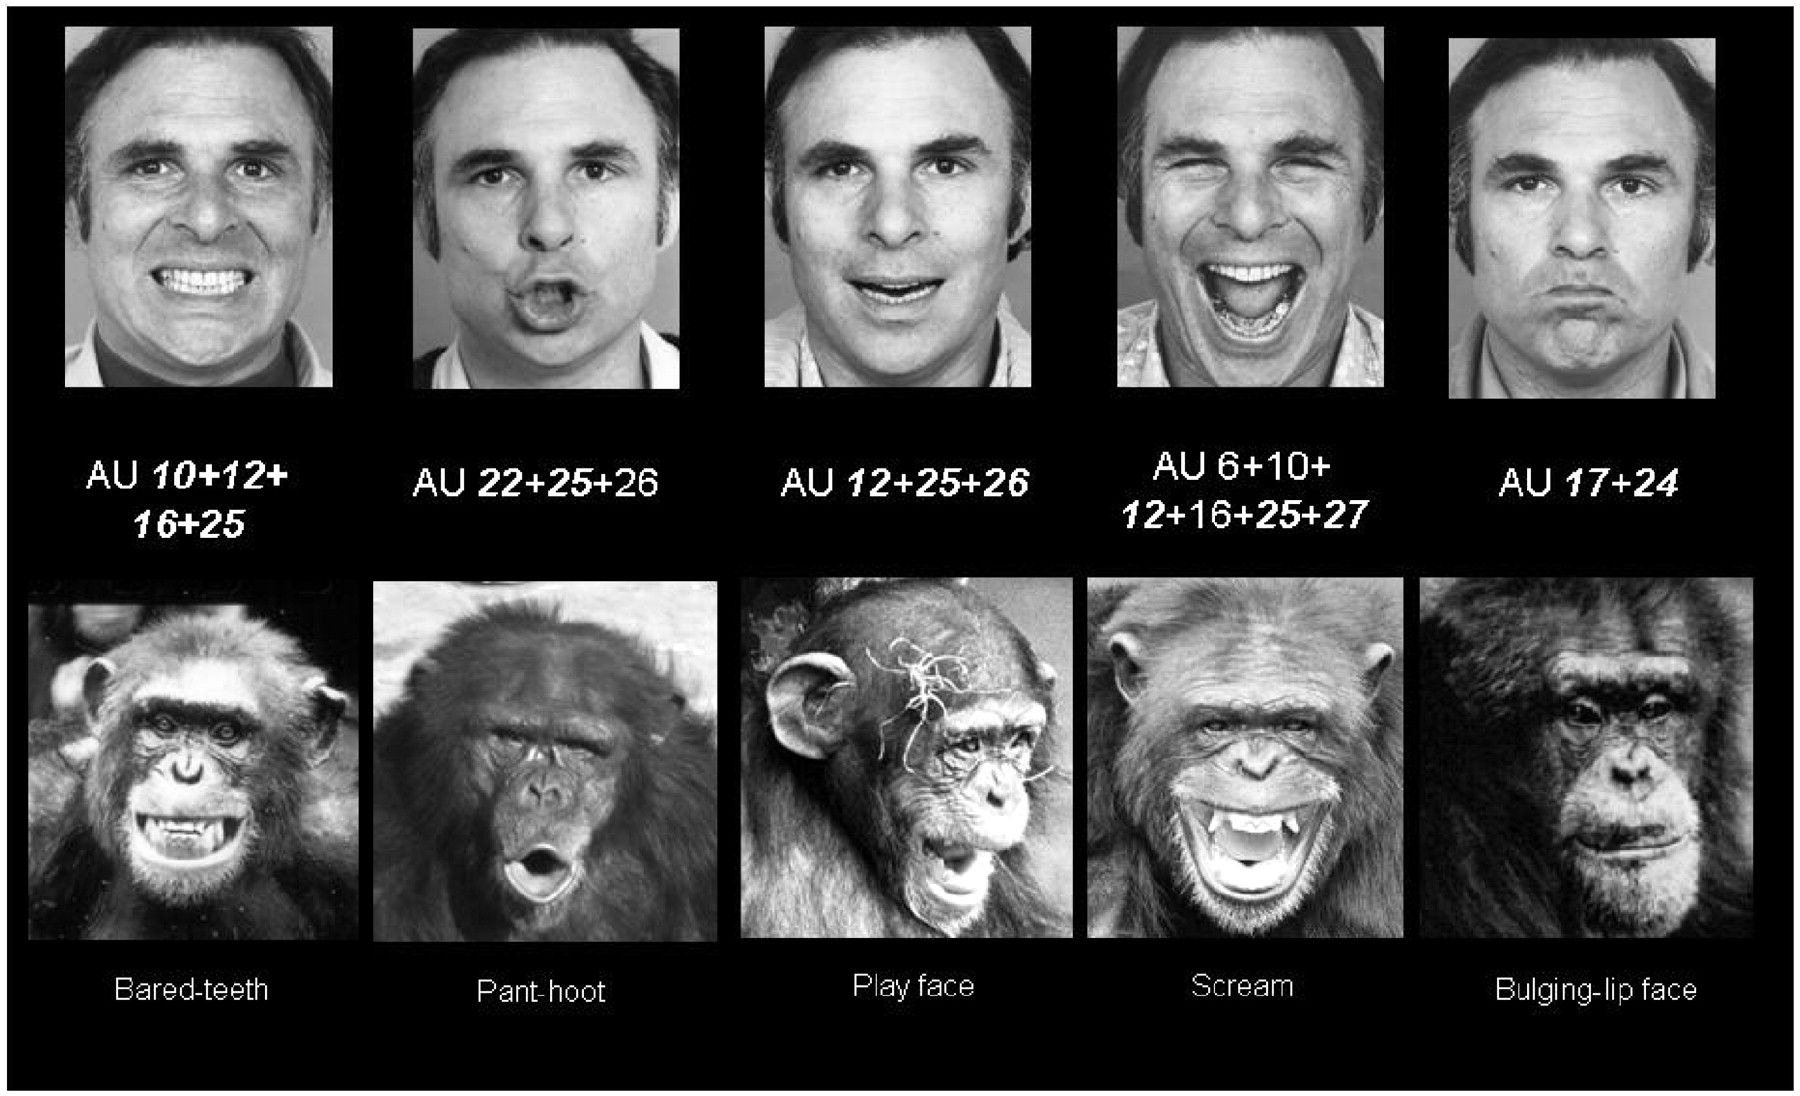 language in chimpanzees and humans Can non-human primates learn and use human languages do they have the mental ability to comprehend a symbolic communication system and to use it creatively research with chimpanzees, bonobos, and gorillas to answer these questions has been ongoing since the 1960's.